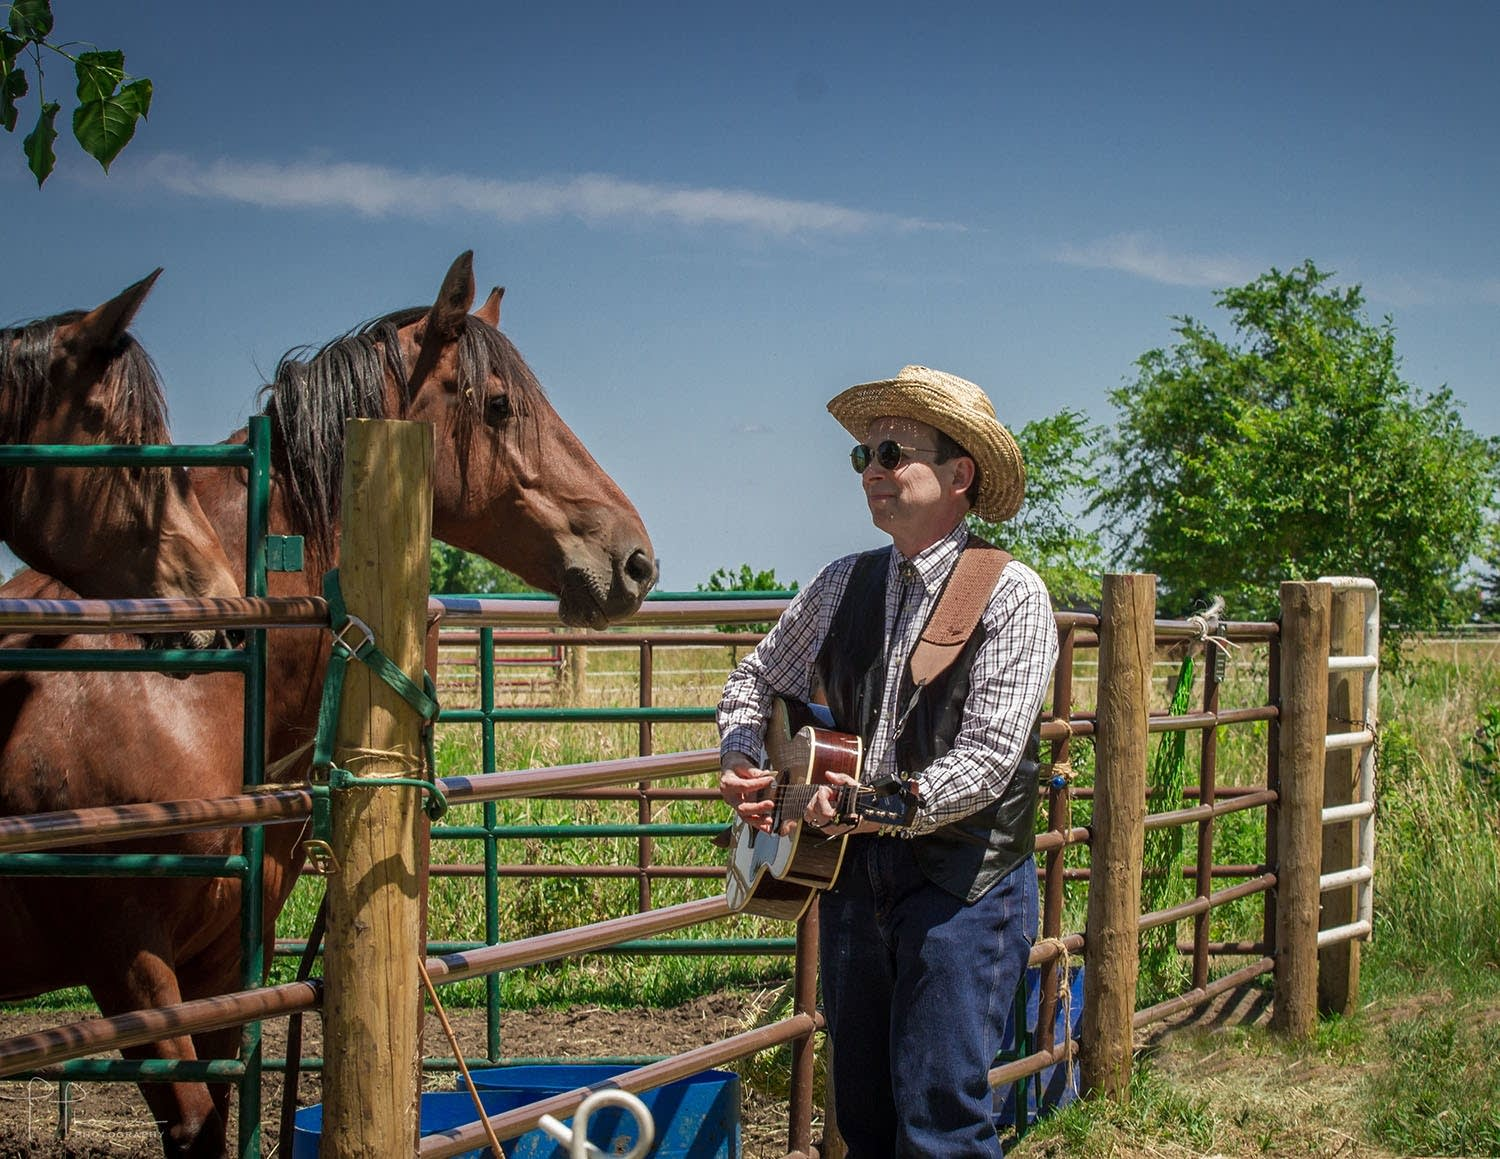 AJ Scheiber performs for the horses